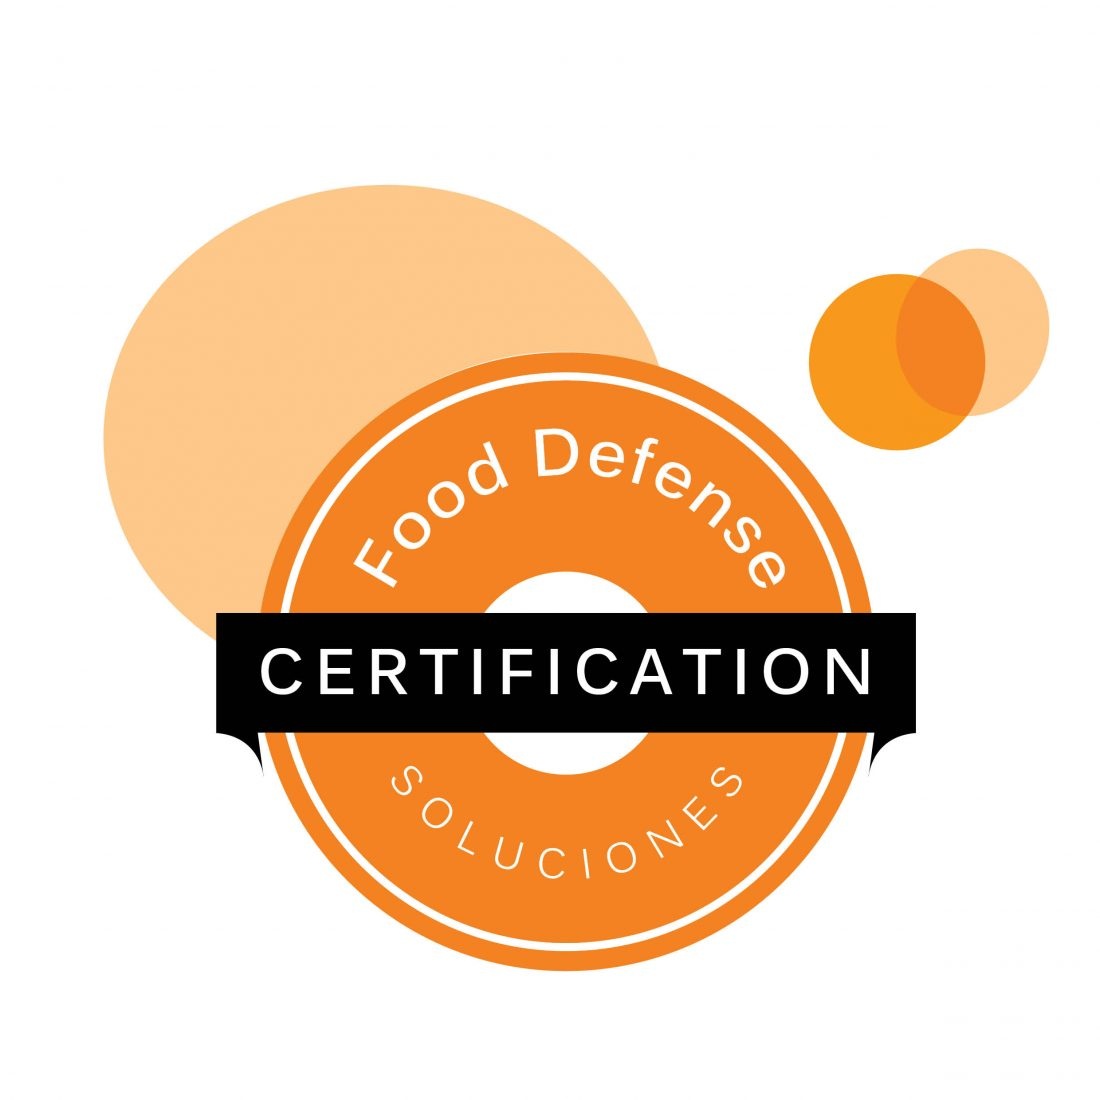 Sello certificación Food Defense